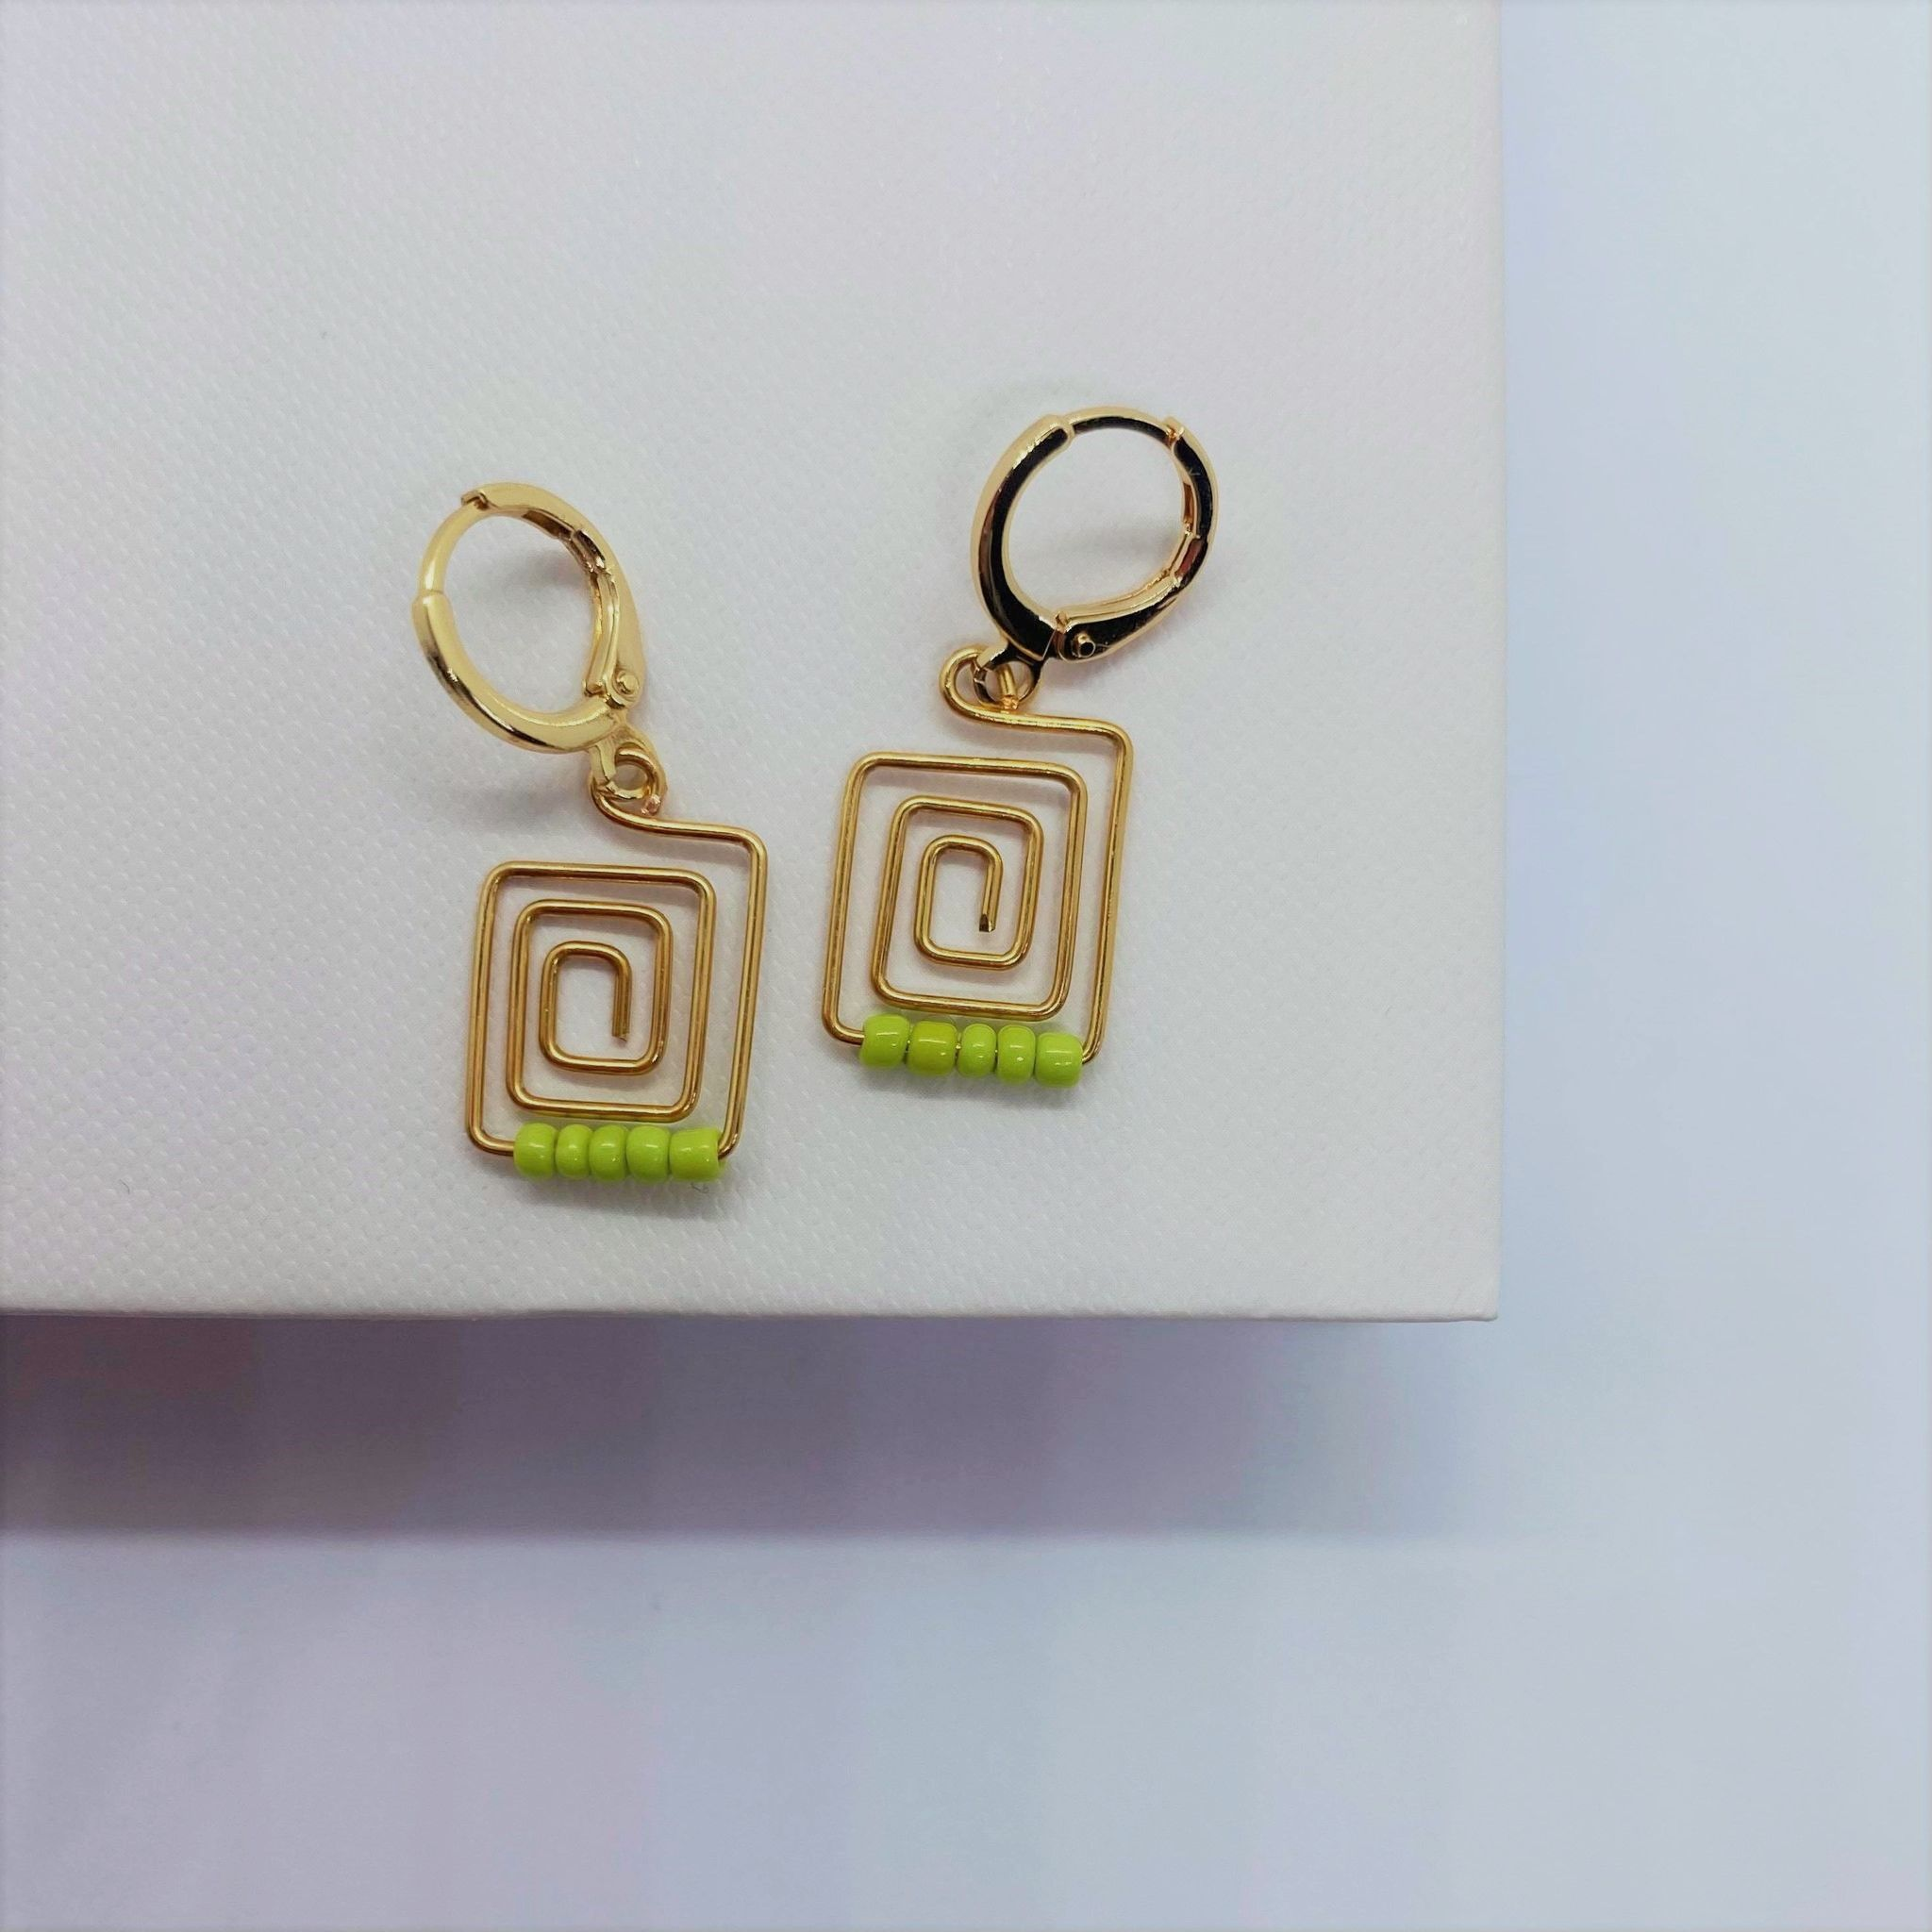 The Paxos pair in green